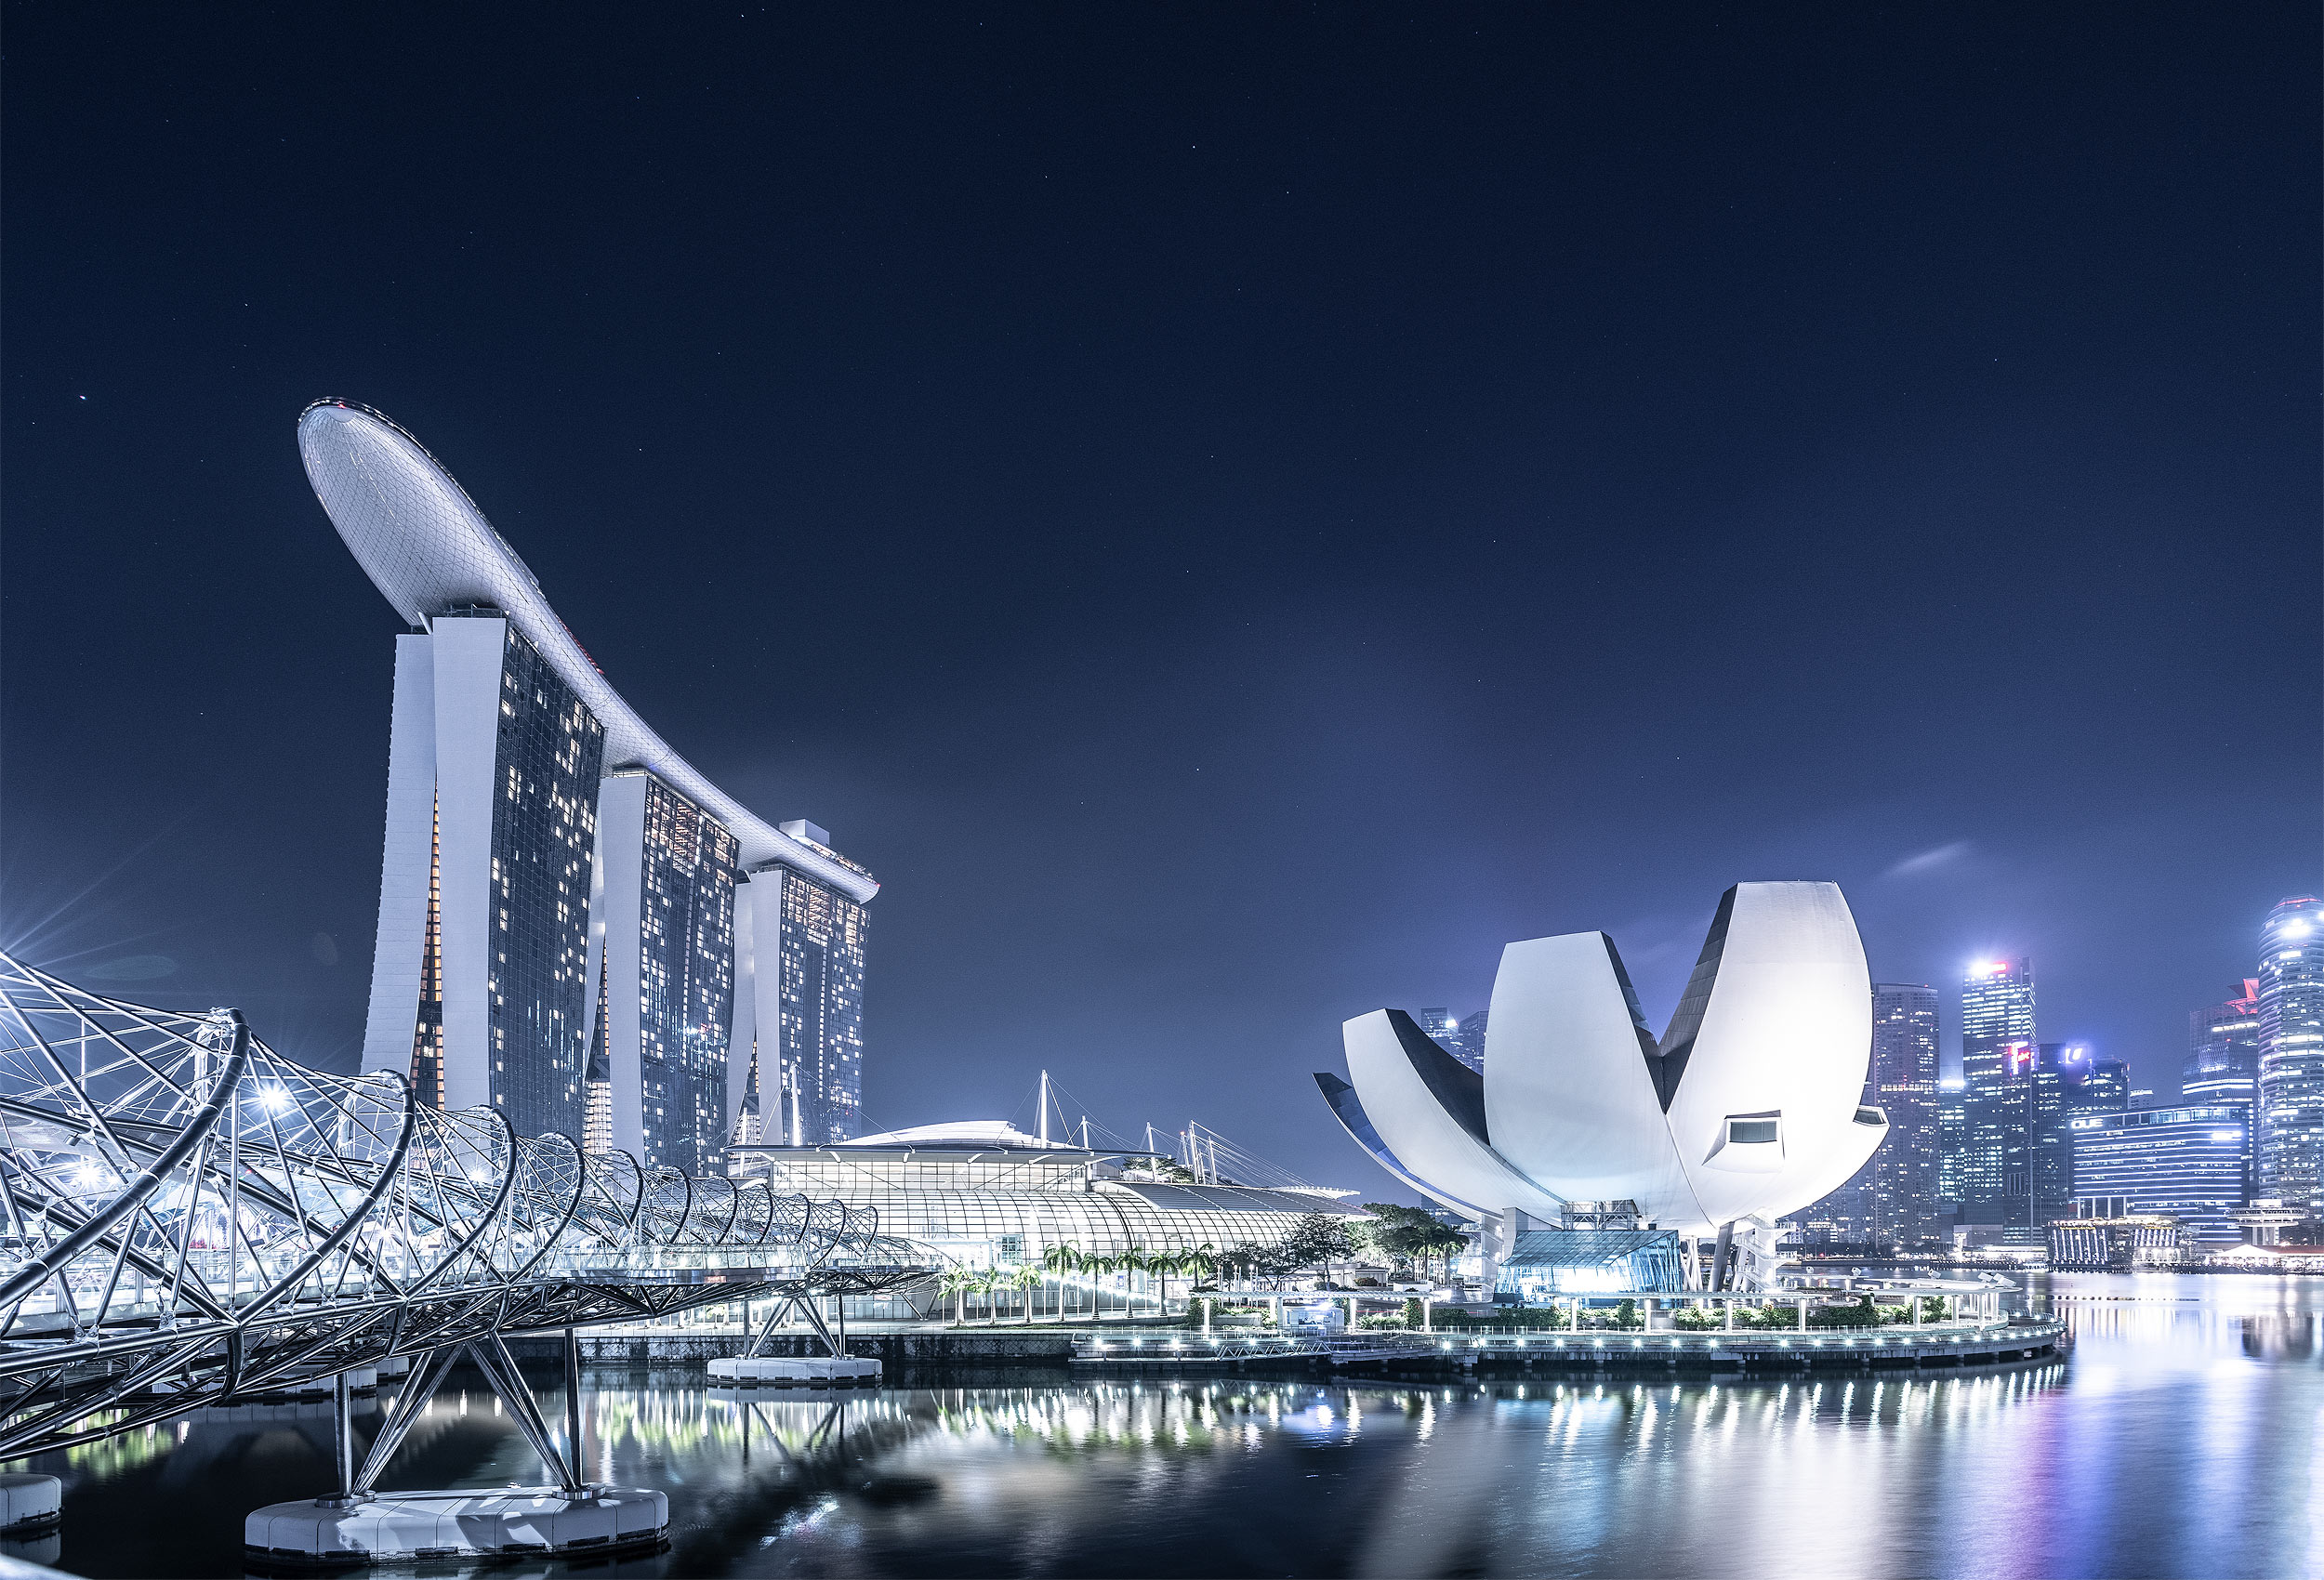 Singapore at night  by cityscape photographer Kristopher Grunert